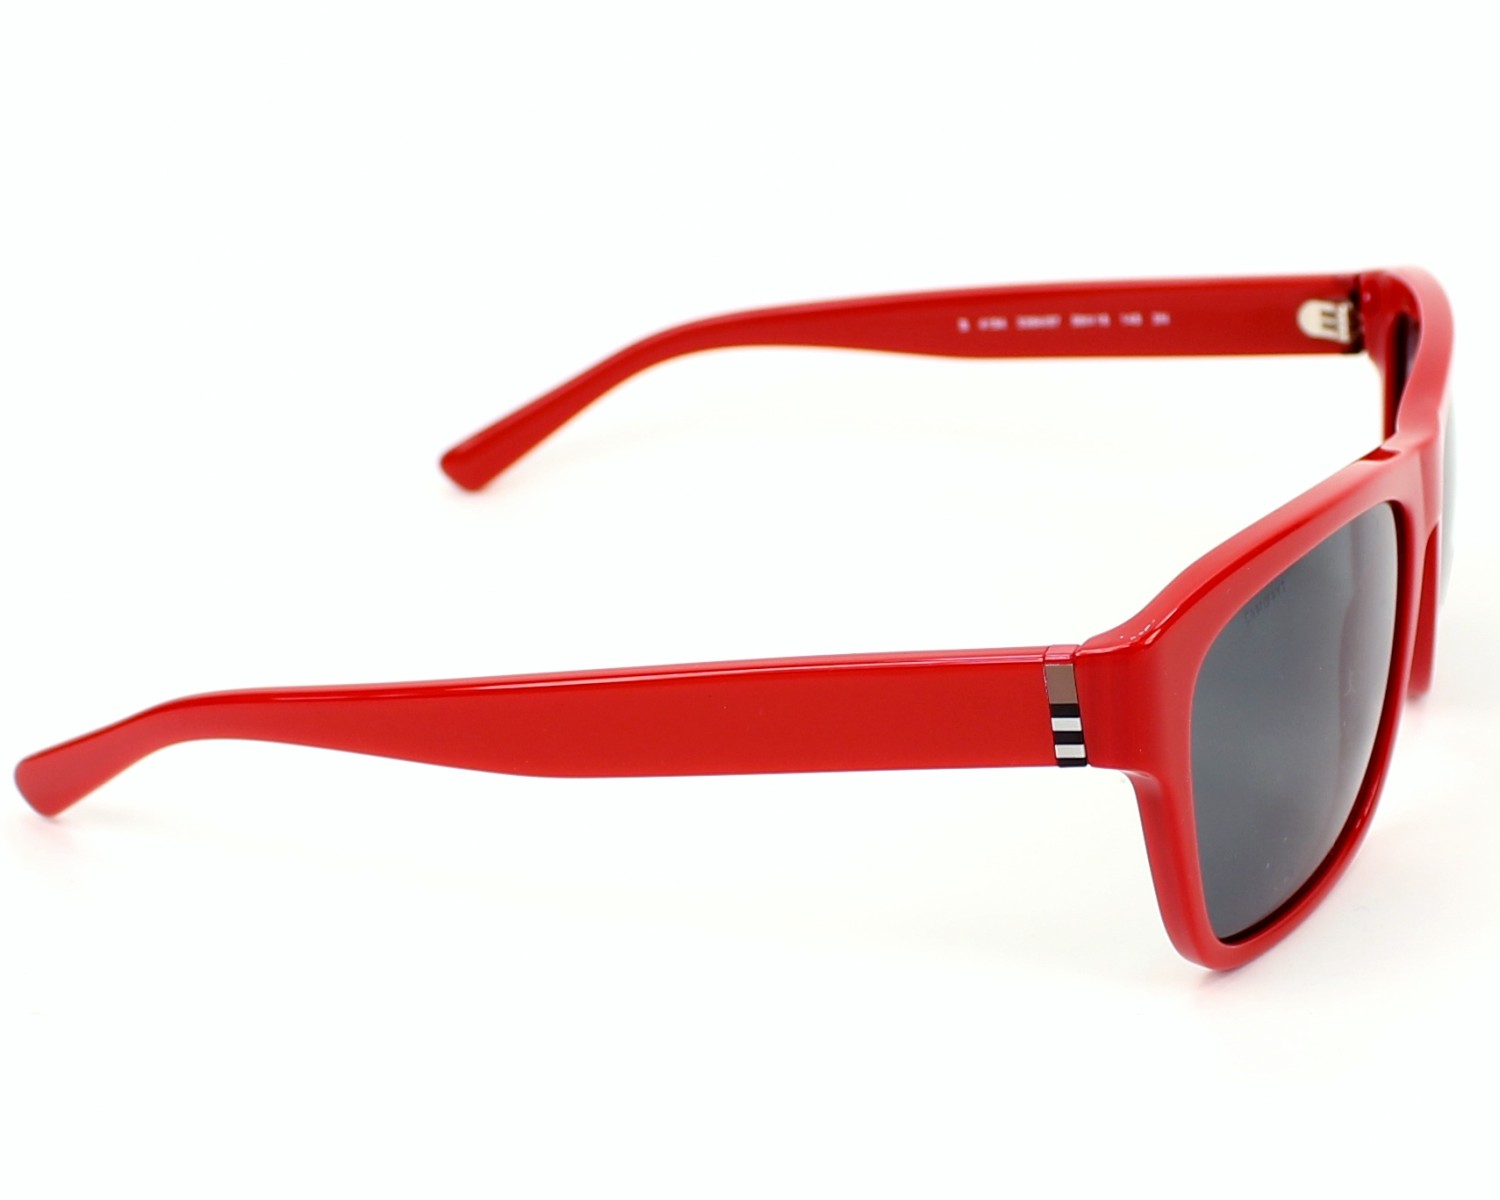 Sunglasses Burberry BE-4194 3364 87 - Red side view 21957d198c174